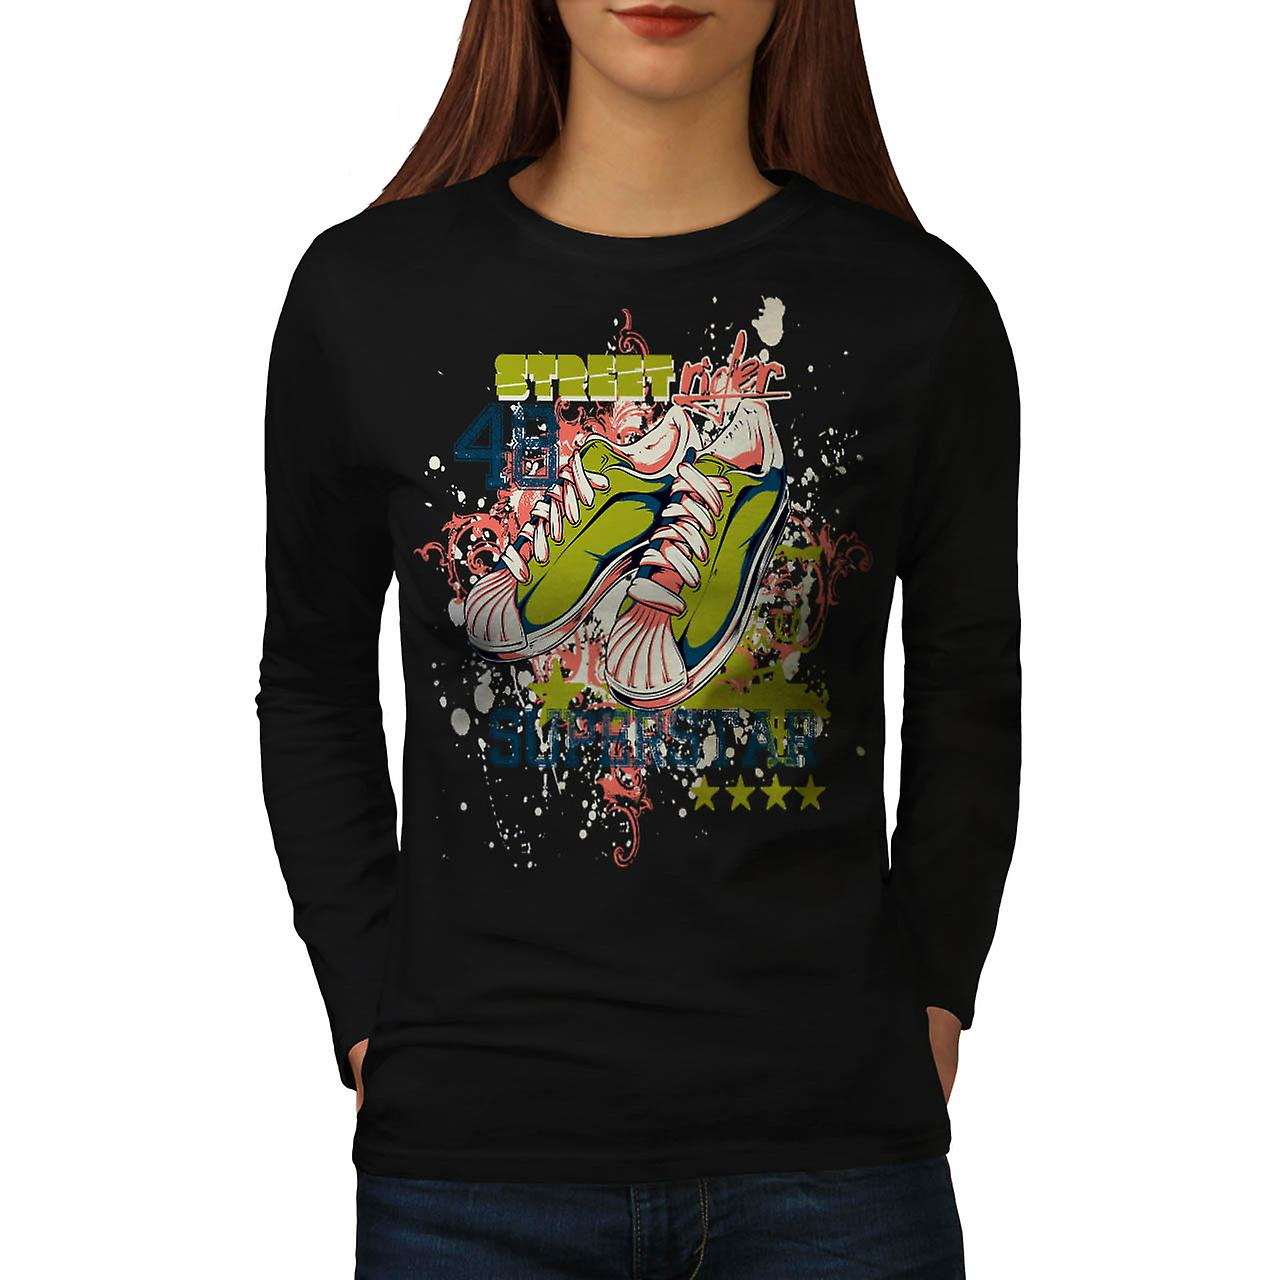 Street Rider Super Star Shoes Women Black Long Sleeve T-shirt | Wellcoda